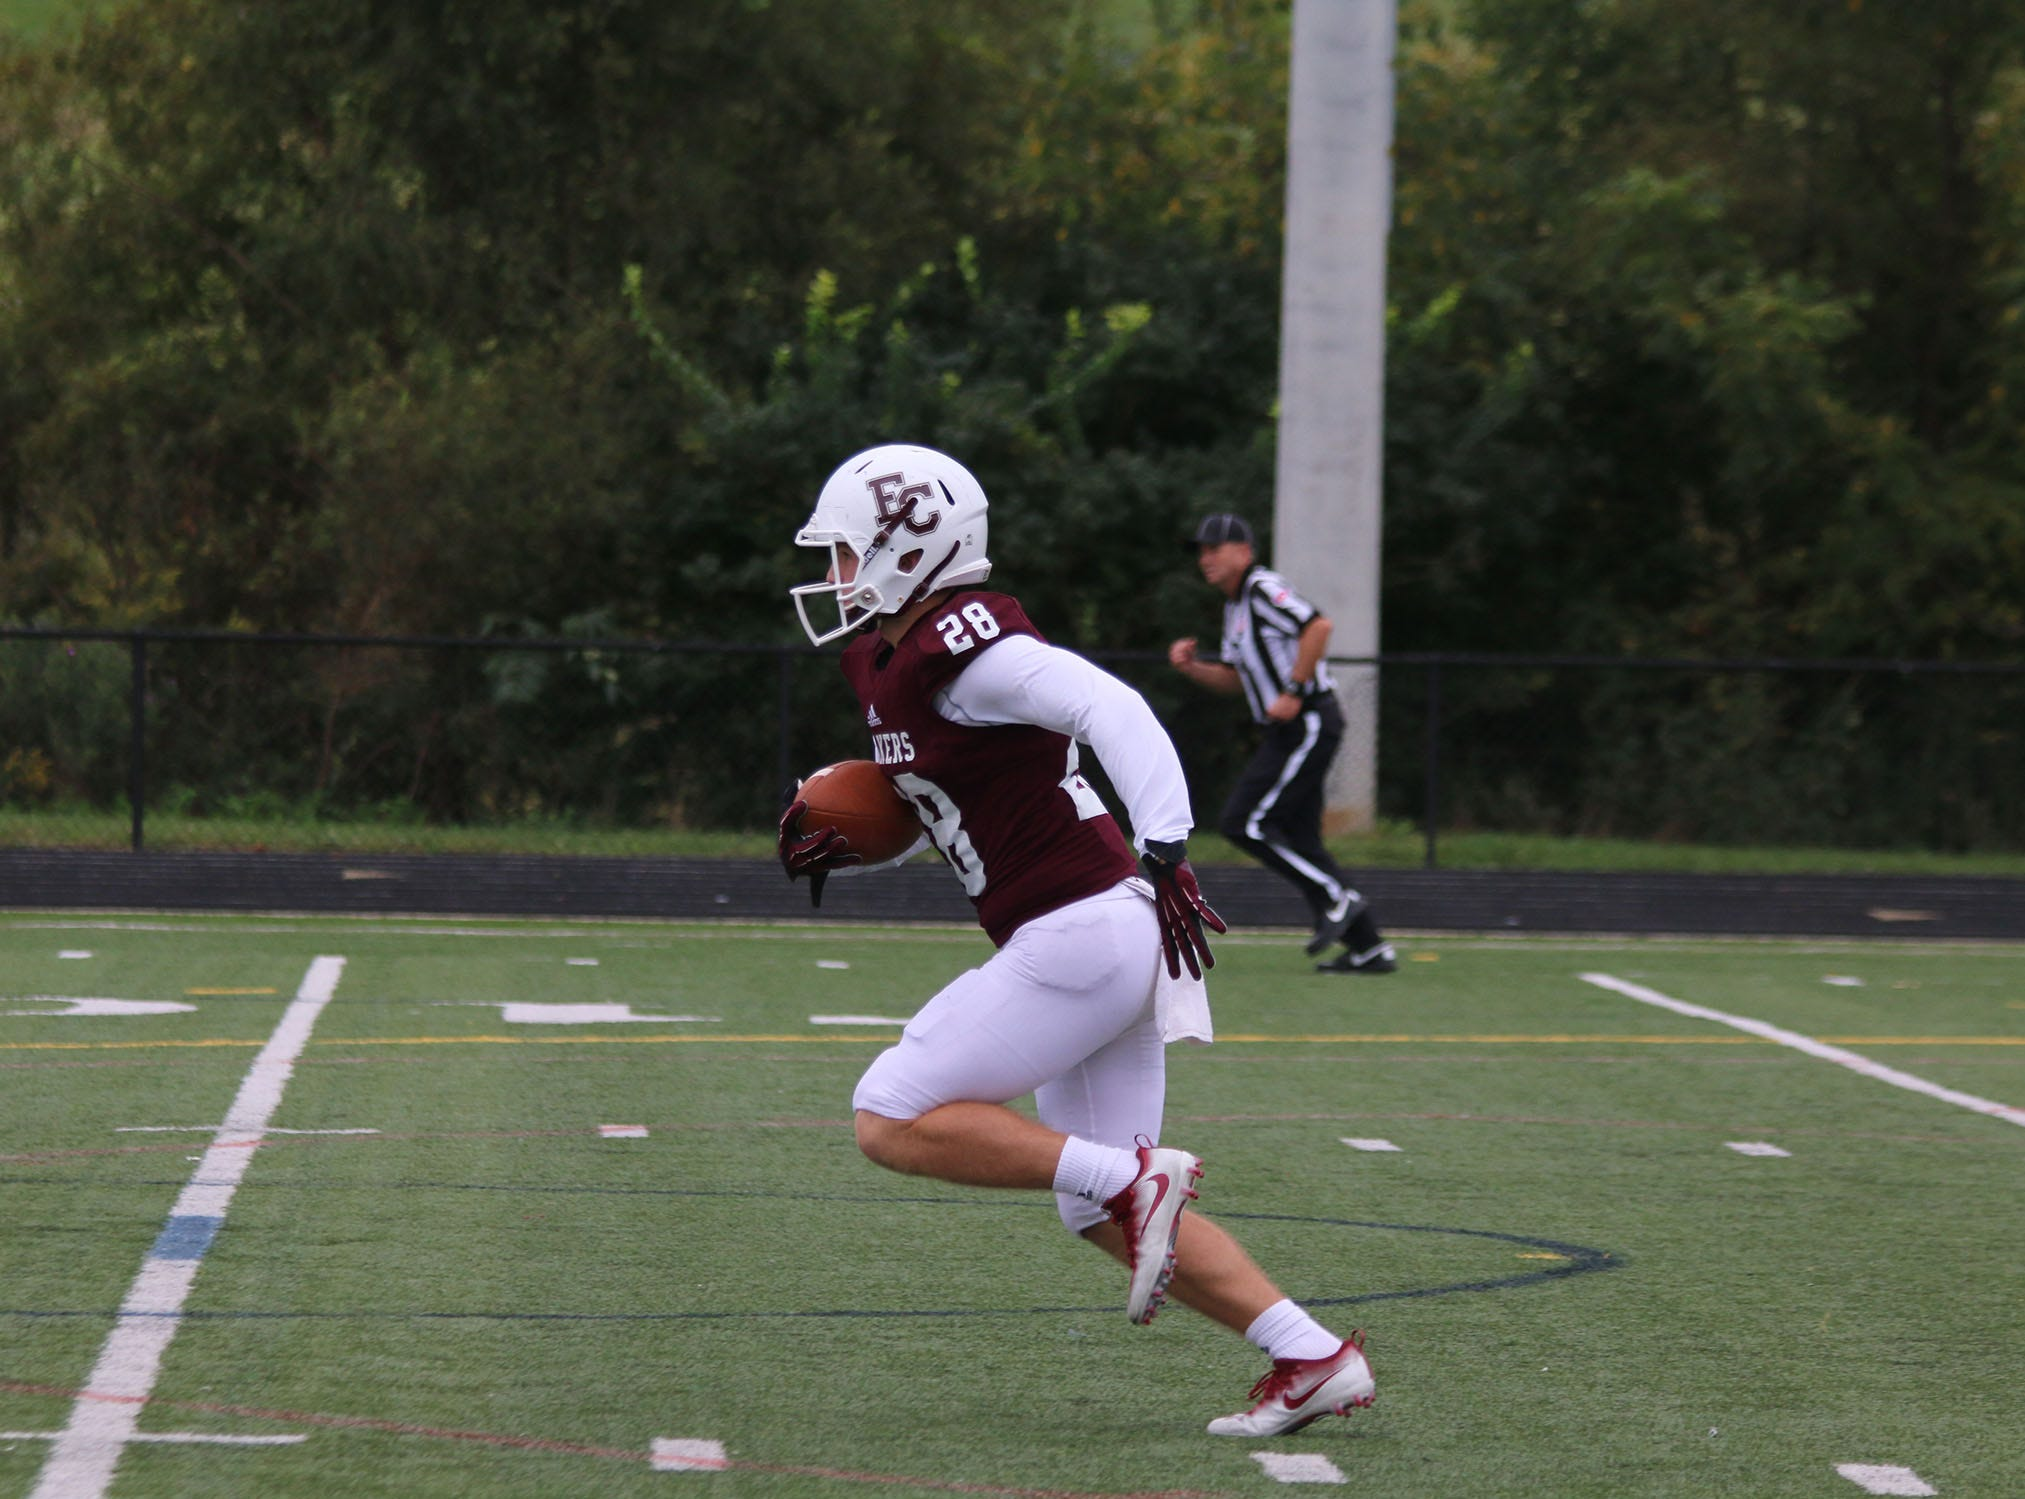 Connor Bray, a 2018 Northeastern High School graduate, played in 10 games, rushing for 47 yards on 19 carries and making 10 catches for 25 yards.